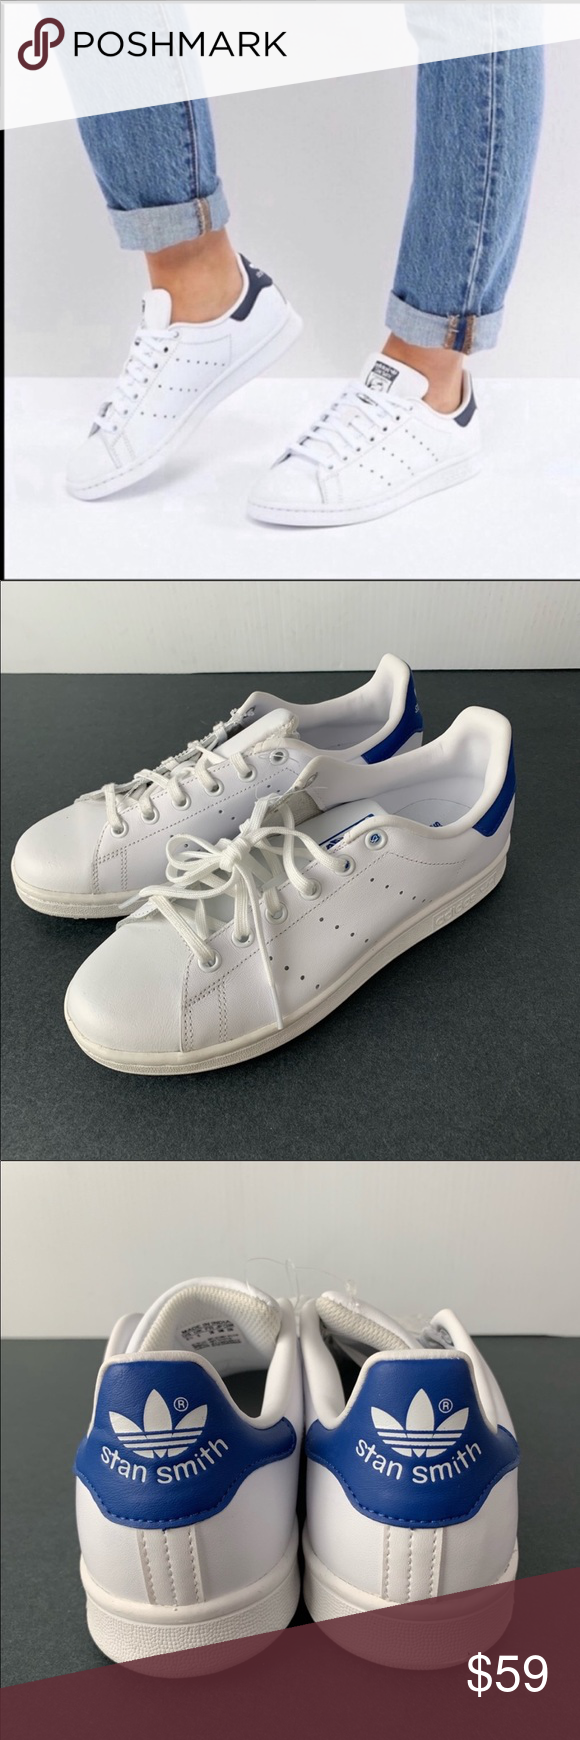 ????Adidas Stan Smith Originals Blue White Sneakers NWT (With